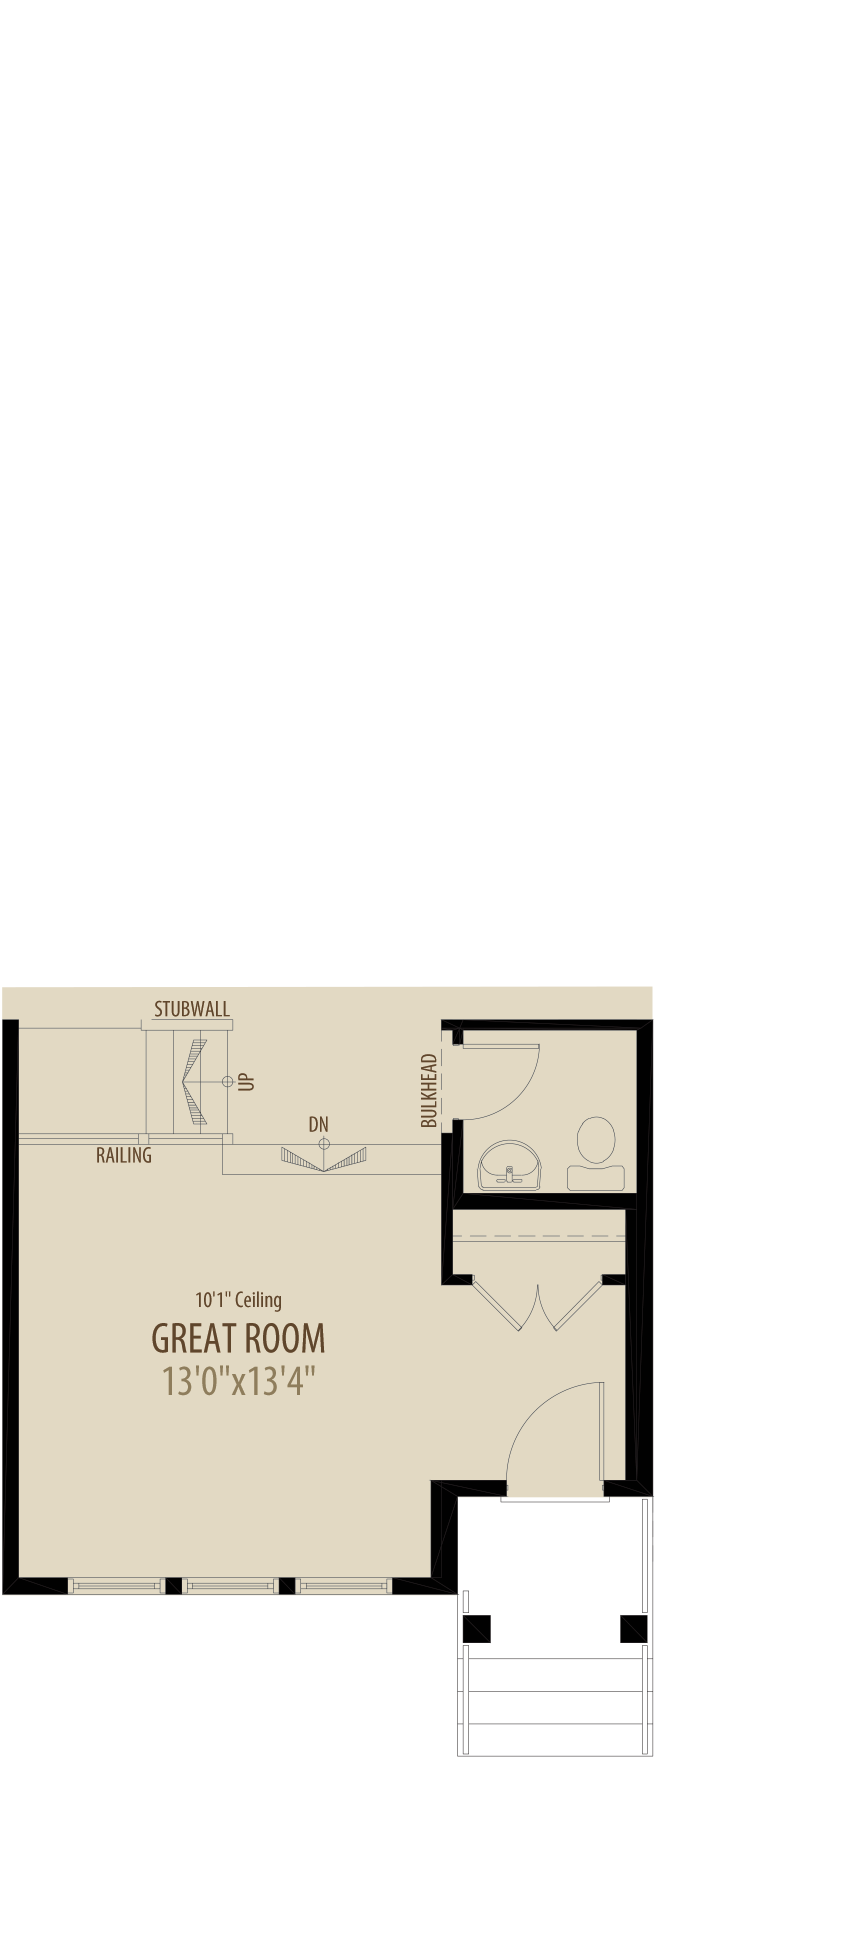 Grand Great Room